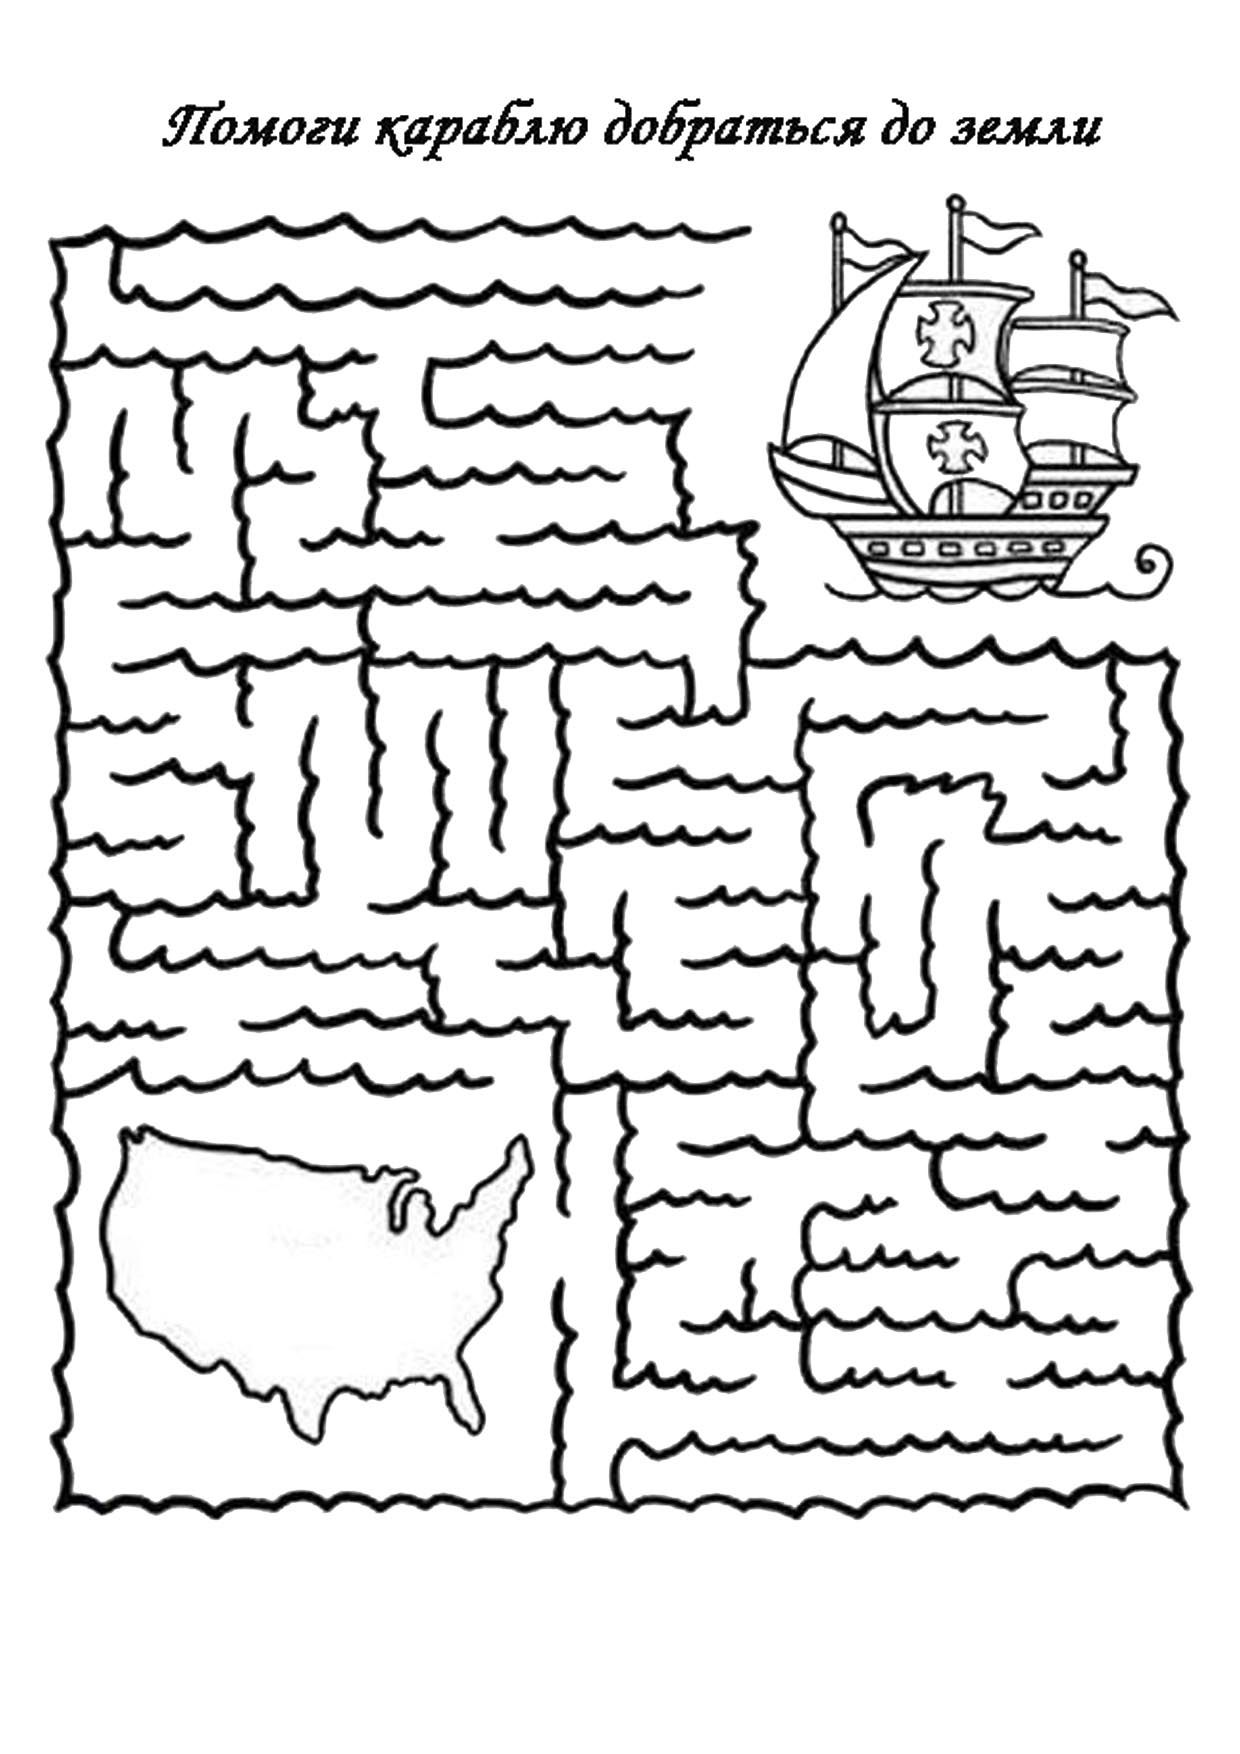 Worksheets Columbus Day Worksheets pin by inge tresia on pendidikan pinterest columbus day printables maze worksheet cc cycle 3 week 1 history notebooking page